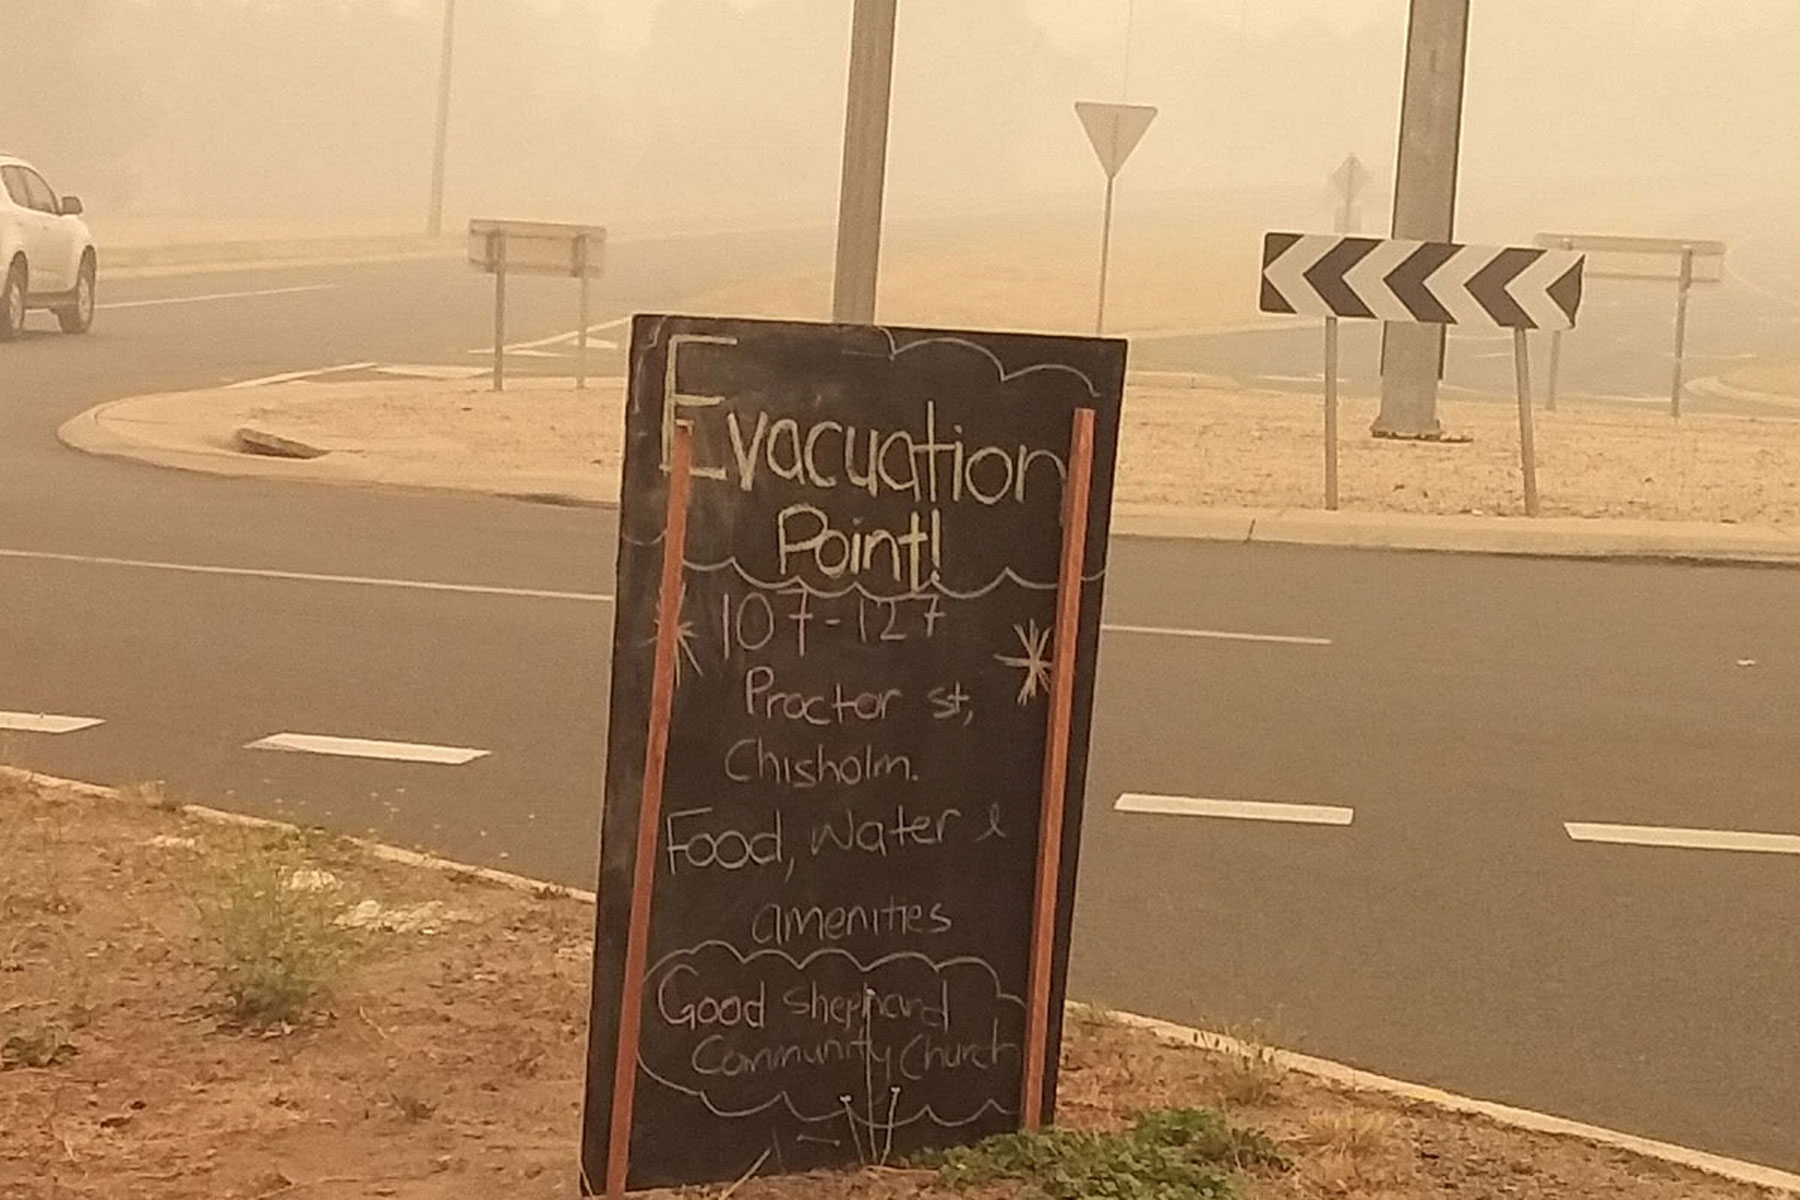 Sign to bushfire evacuation point – The Good Shepherd Lutheran Church at Tuggeranong, ACT, opened its doors as an emergency evacuation center.